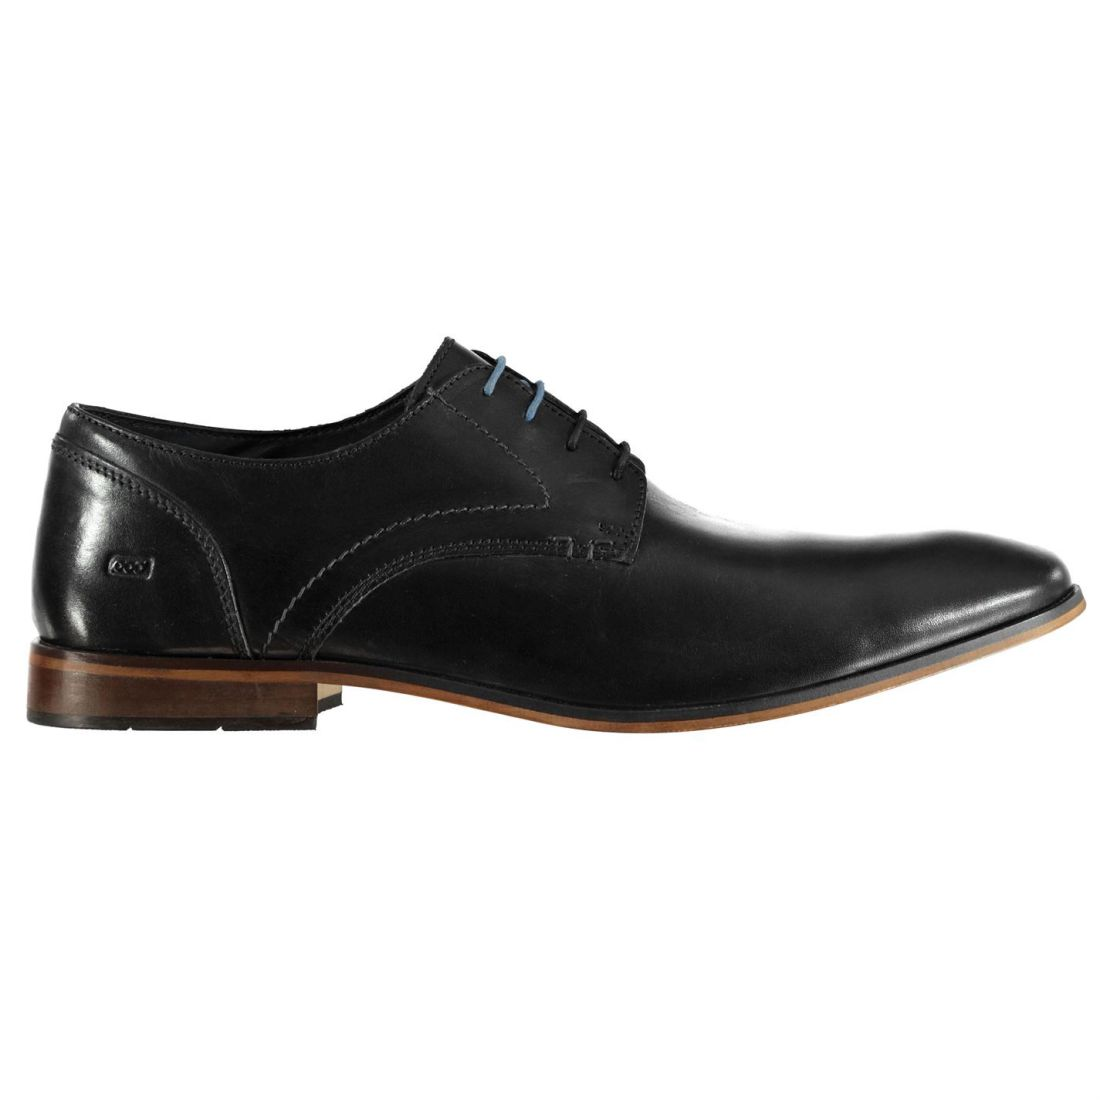 Pod Elegant Occasion Brogue Shoes Mens Gents Everyday Laces Fastened Formal